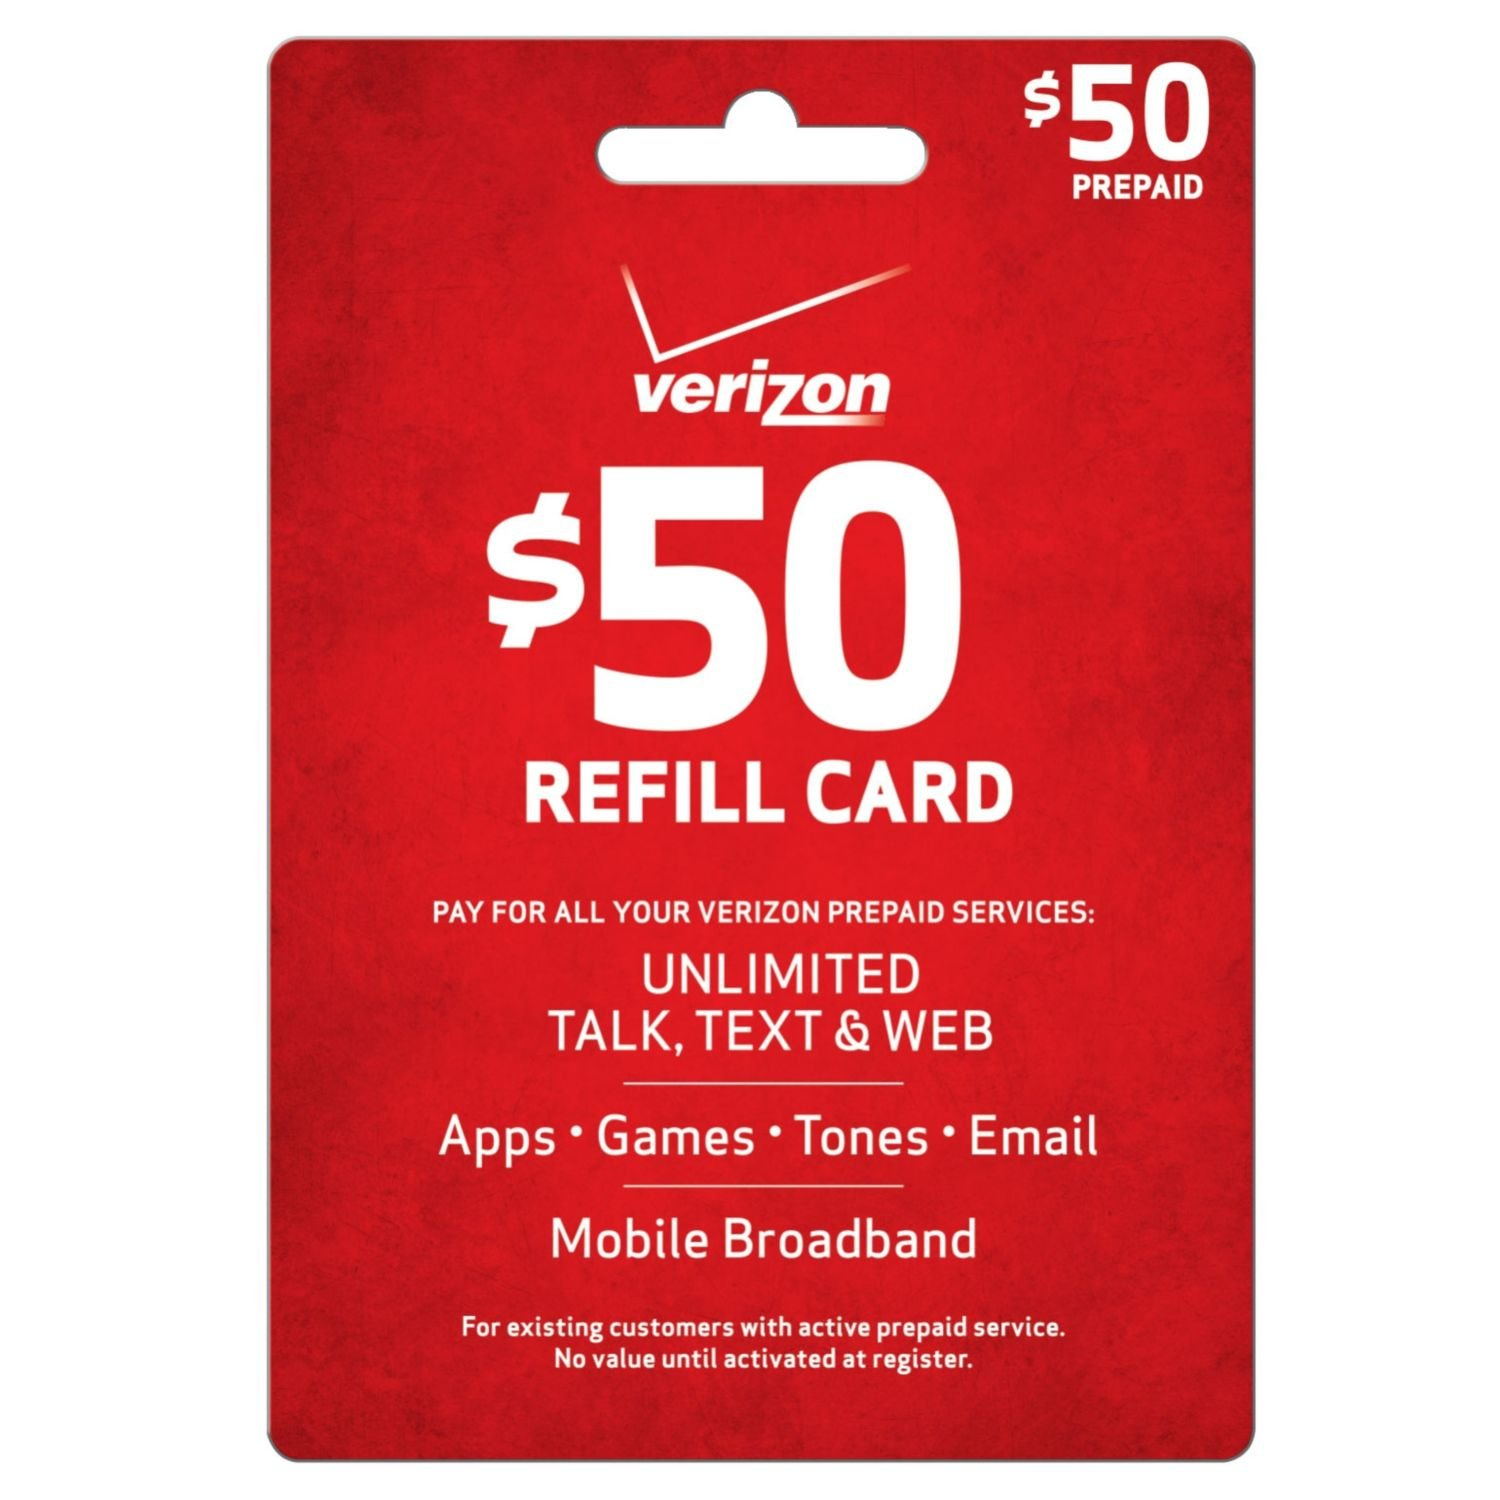 Verizon $50 Prepaid Refill Card (mail delivery)